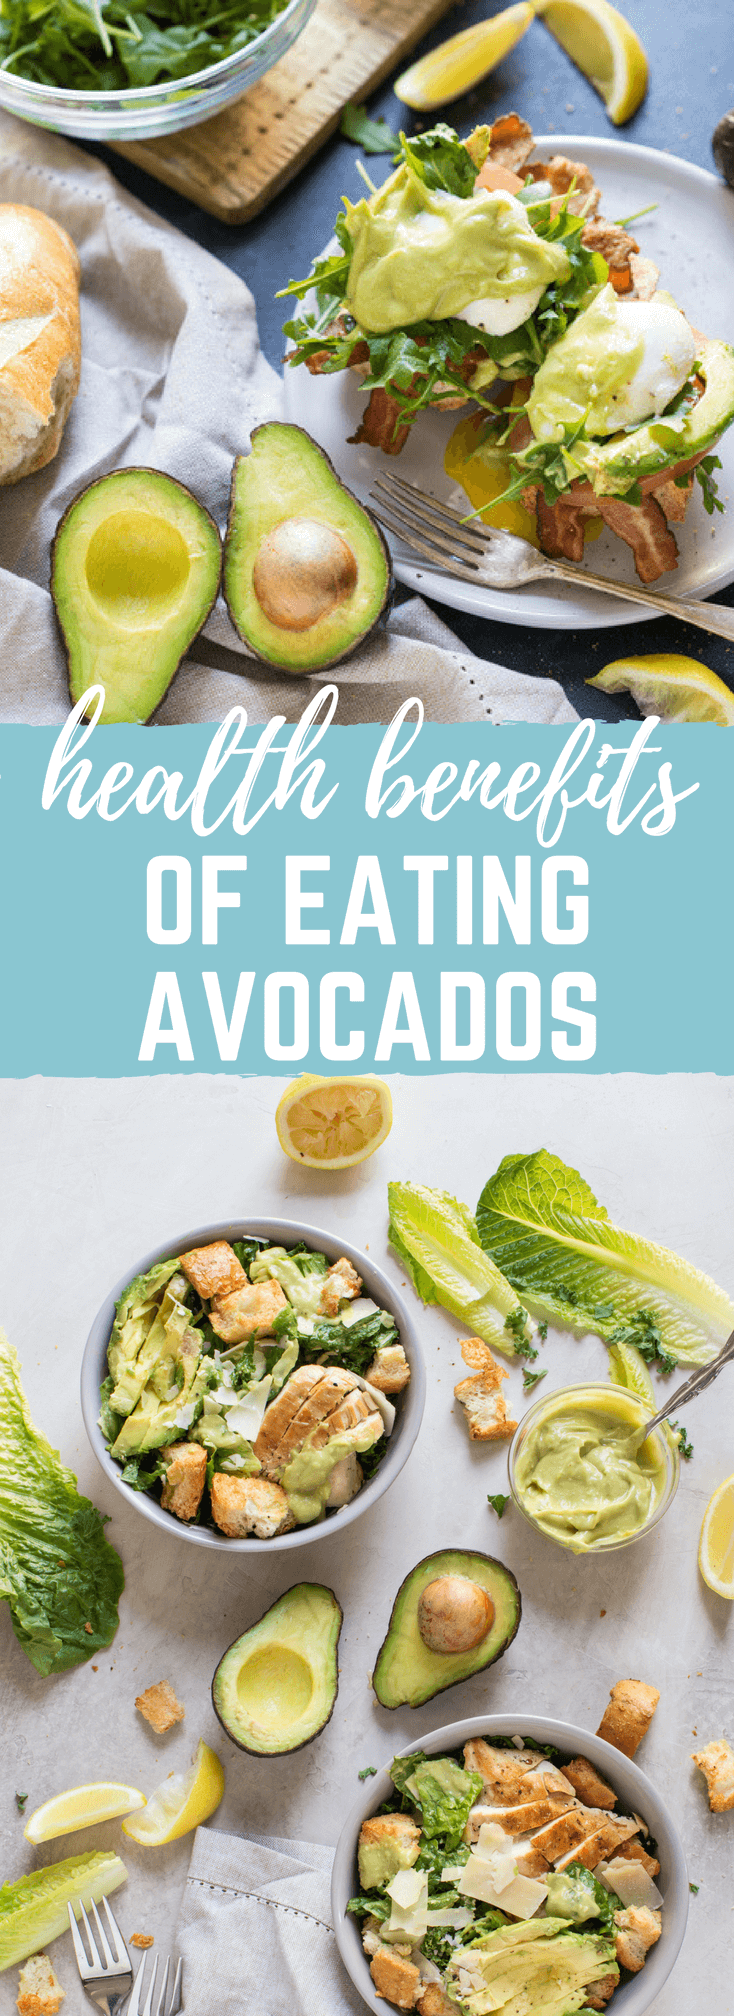 Avocado recipes and eating tips for a heart healthy diet. Check out the heart health benefits of avocados @MissionAvocados #ad #checkmeout